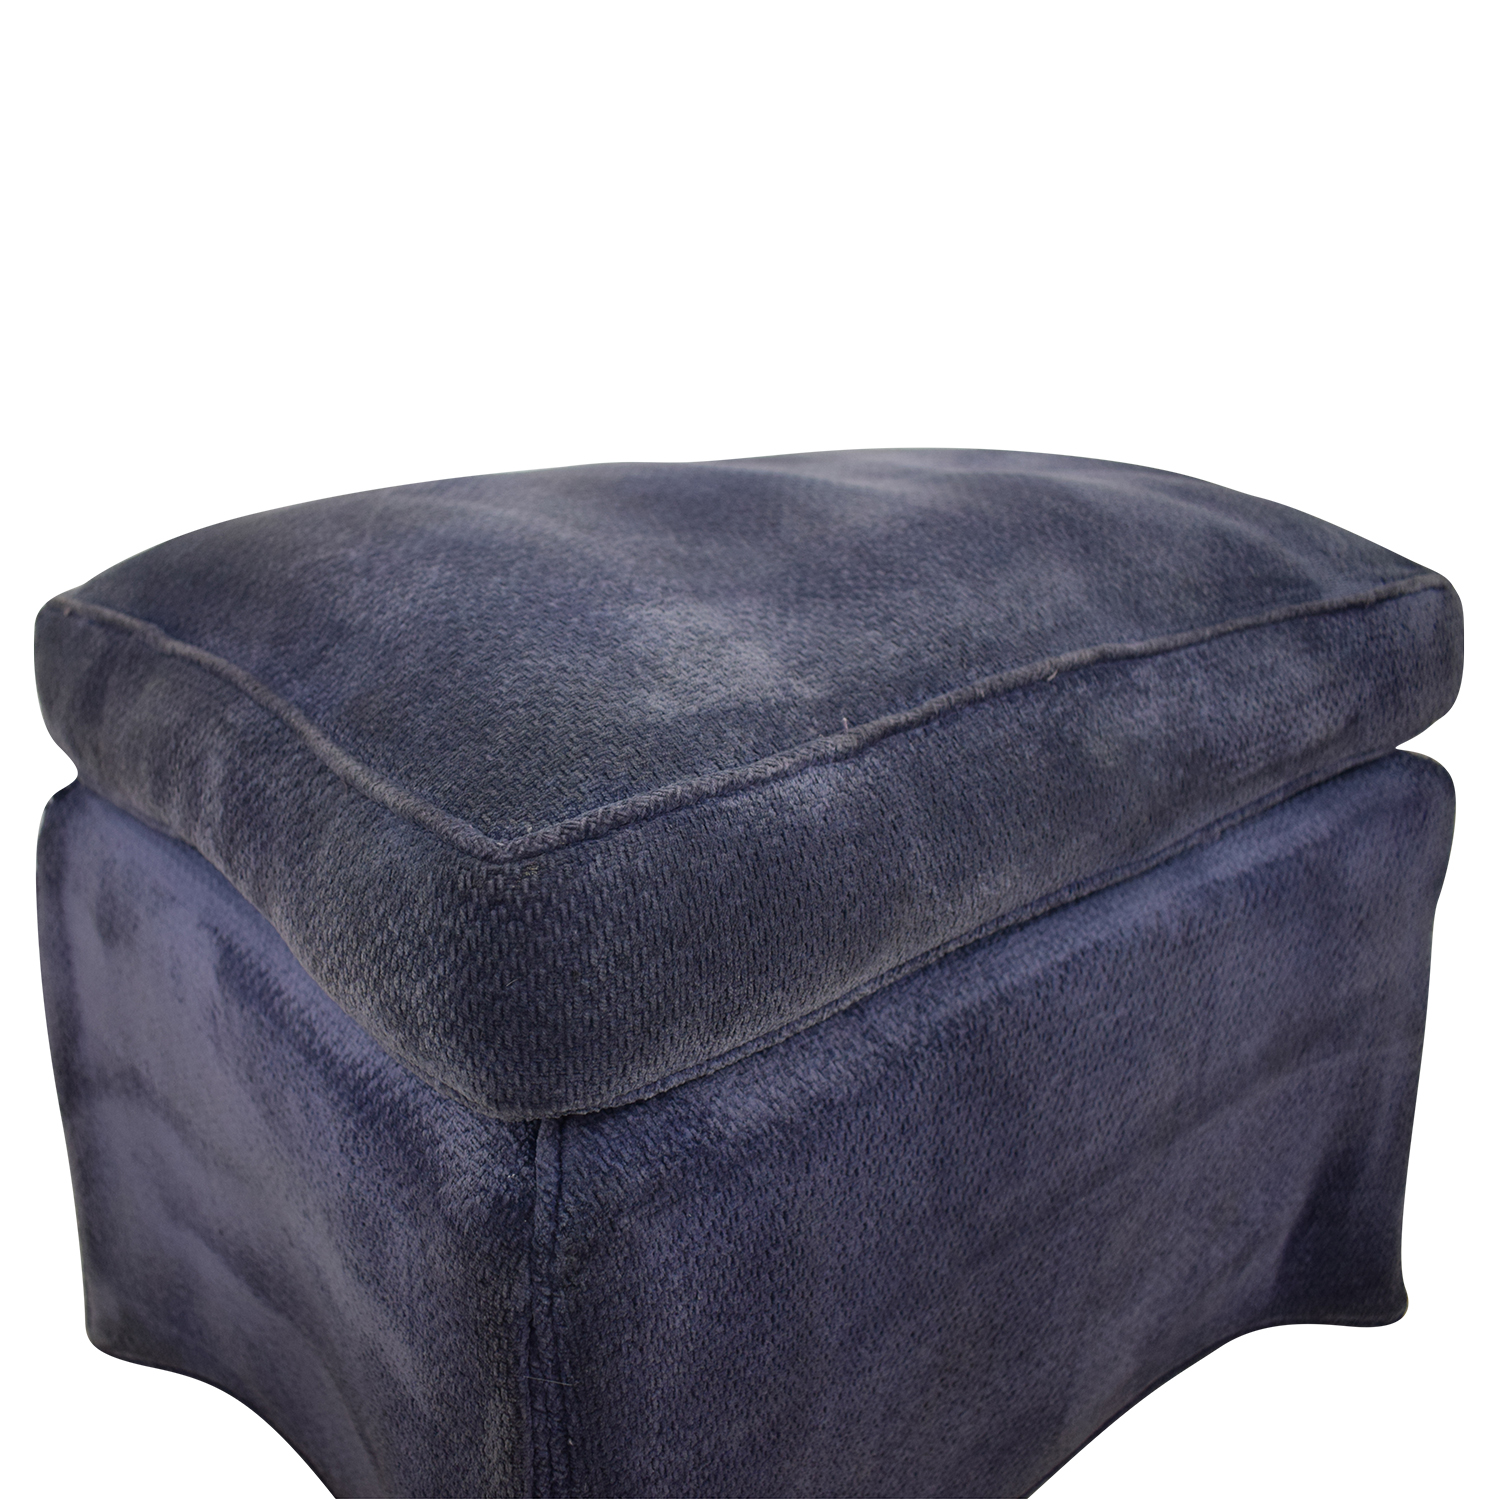 buy Rose Tarlow Ottoman Rose Tarlow Chairs